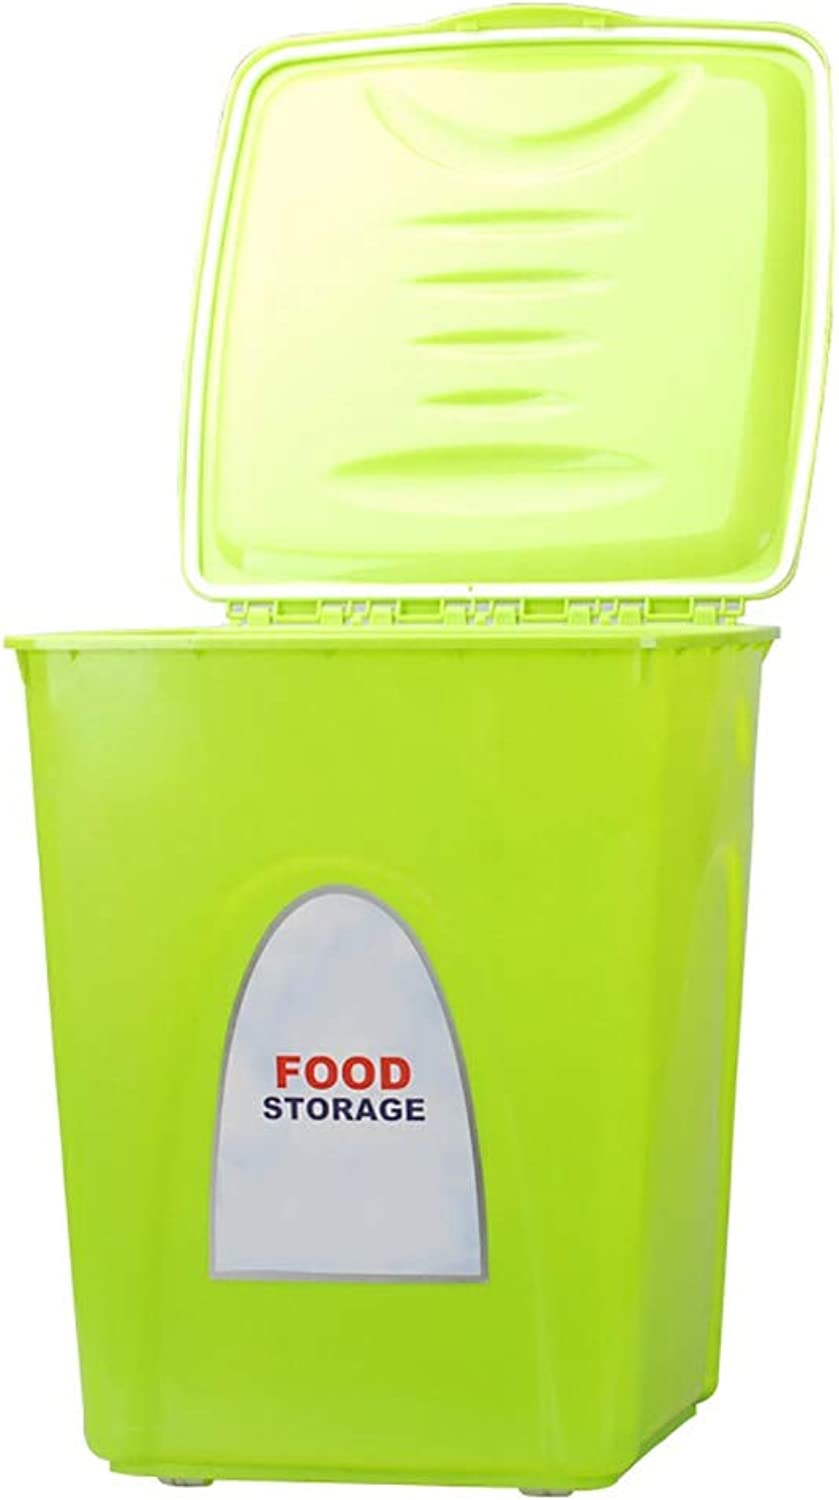 Dog & Cat Food Container Fresh Dry Pet Food PP Resin Storage Container with 4 Wheels Rolling Design 1 Food Shovel for Kibble Bird Seed Rice and Bulk Food Green (Size   S (28x28x32cm))